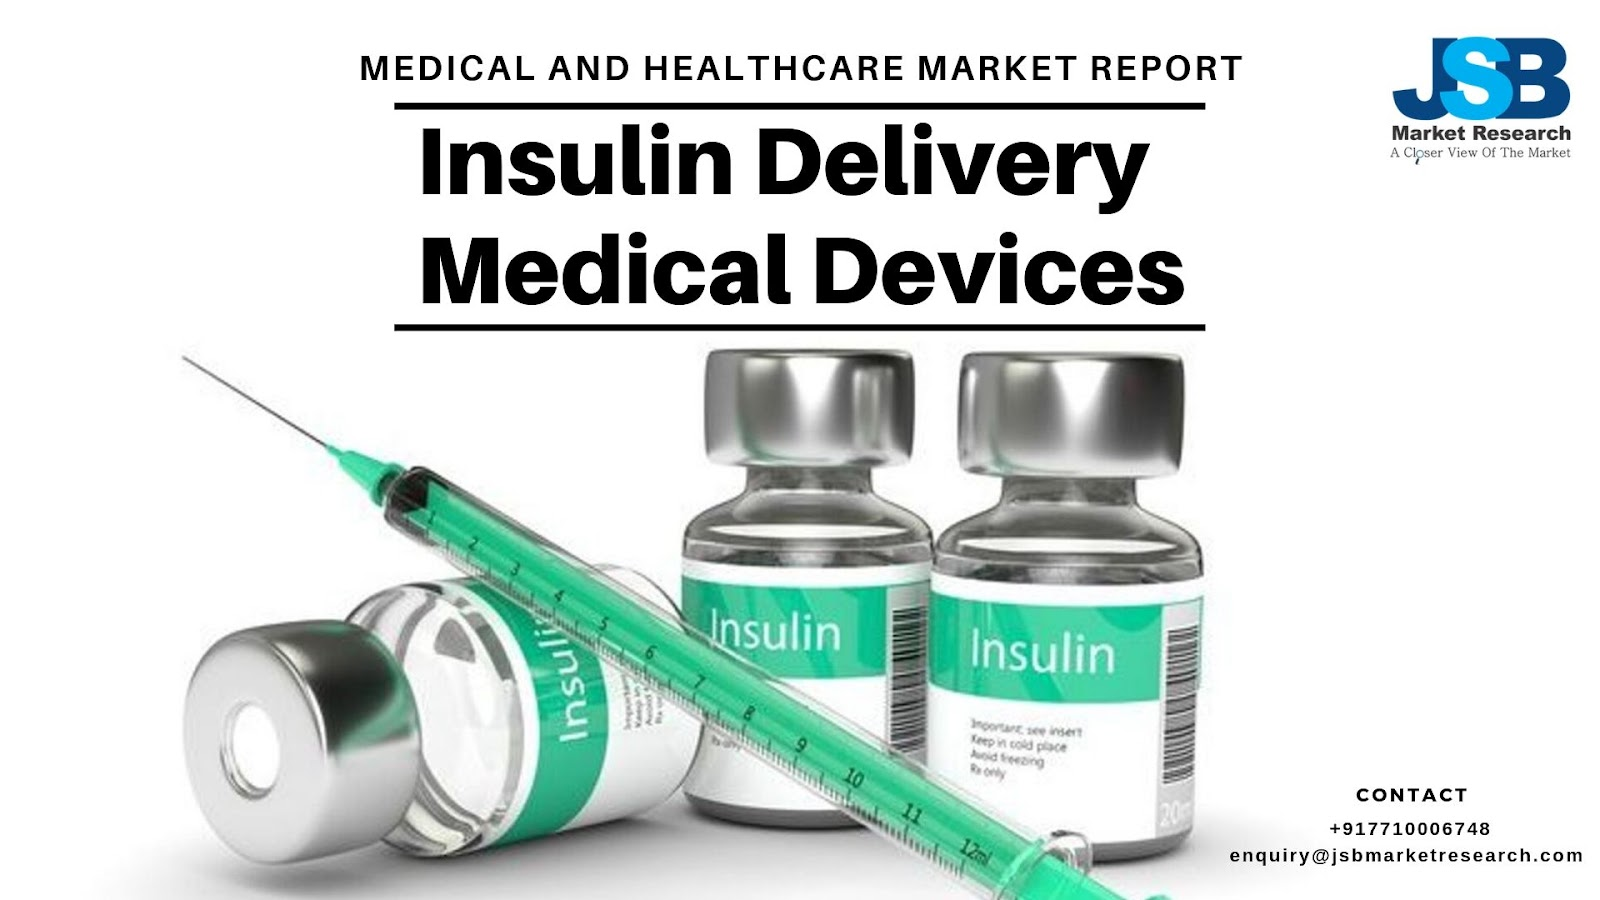 Insulin Delivery Medical Devices